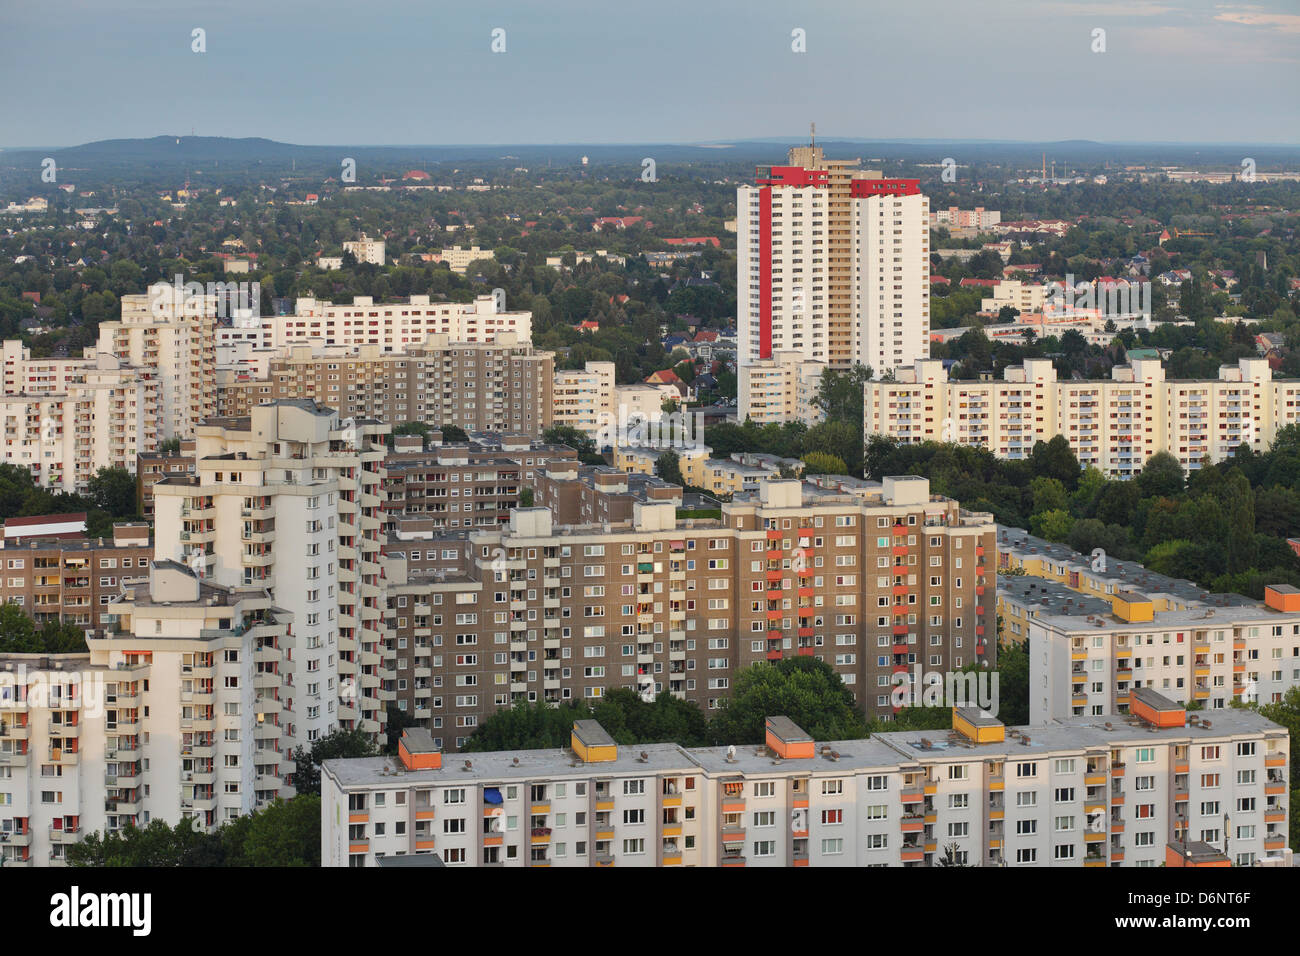 Berlin, Germany, Gropius survey of the city in the evening light Stock Photo